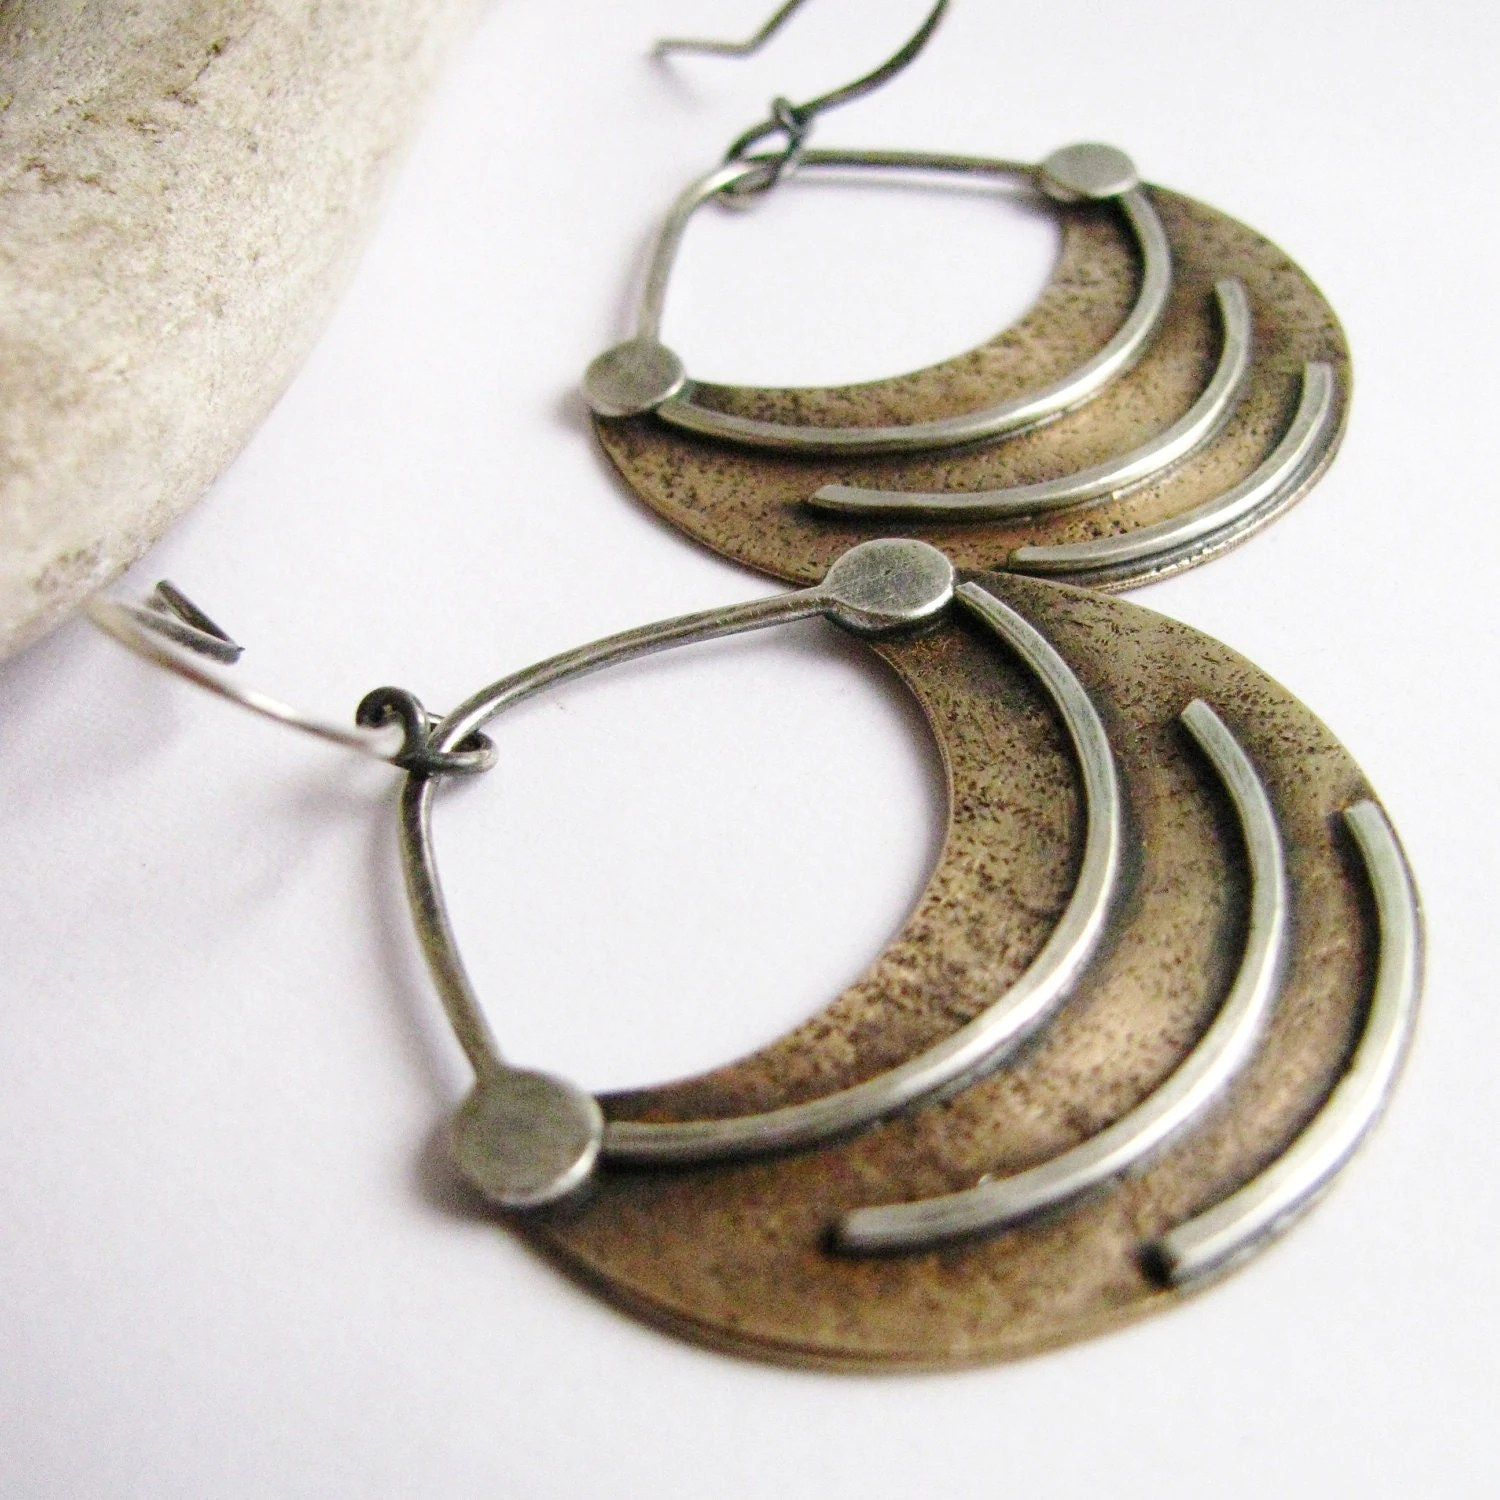 Mixed Metal Earrings Fertile Crescent Ethnic Earrings